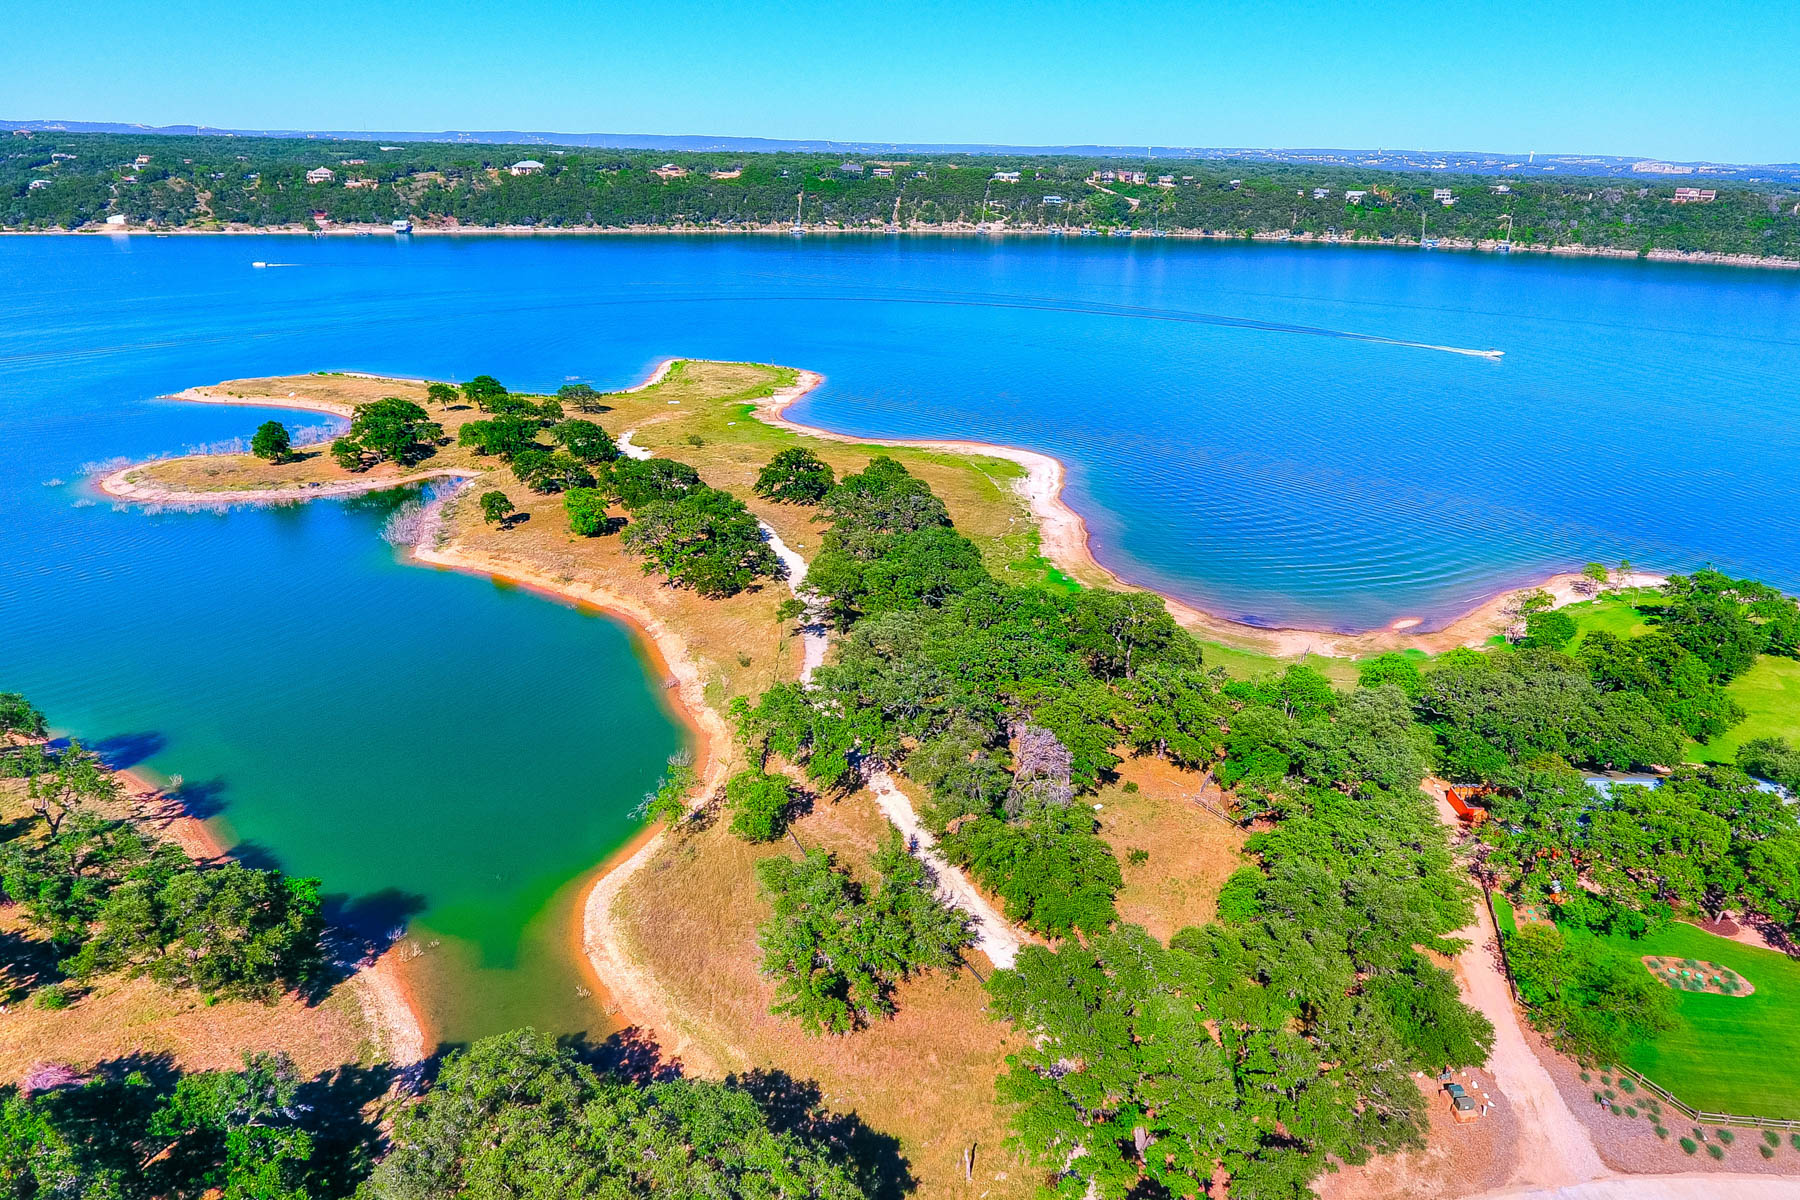 Land for Sale at The Reserve on Lake Travis: 5.87 Waterfront Acres 2208 Cypress Club Pointe Spicewood, Texas 78669 United States